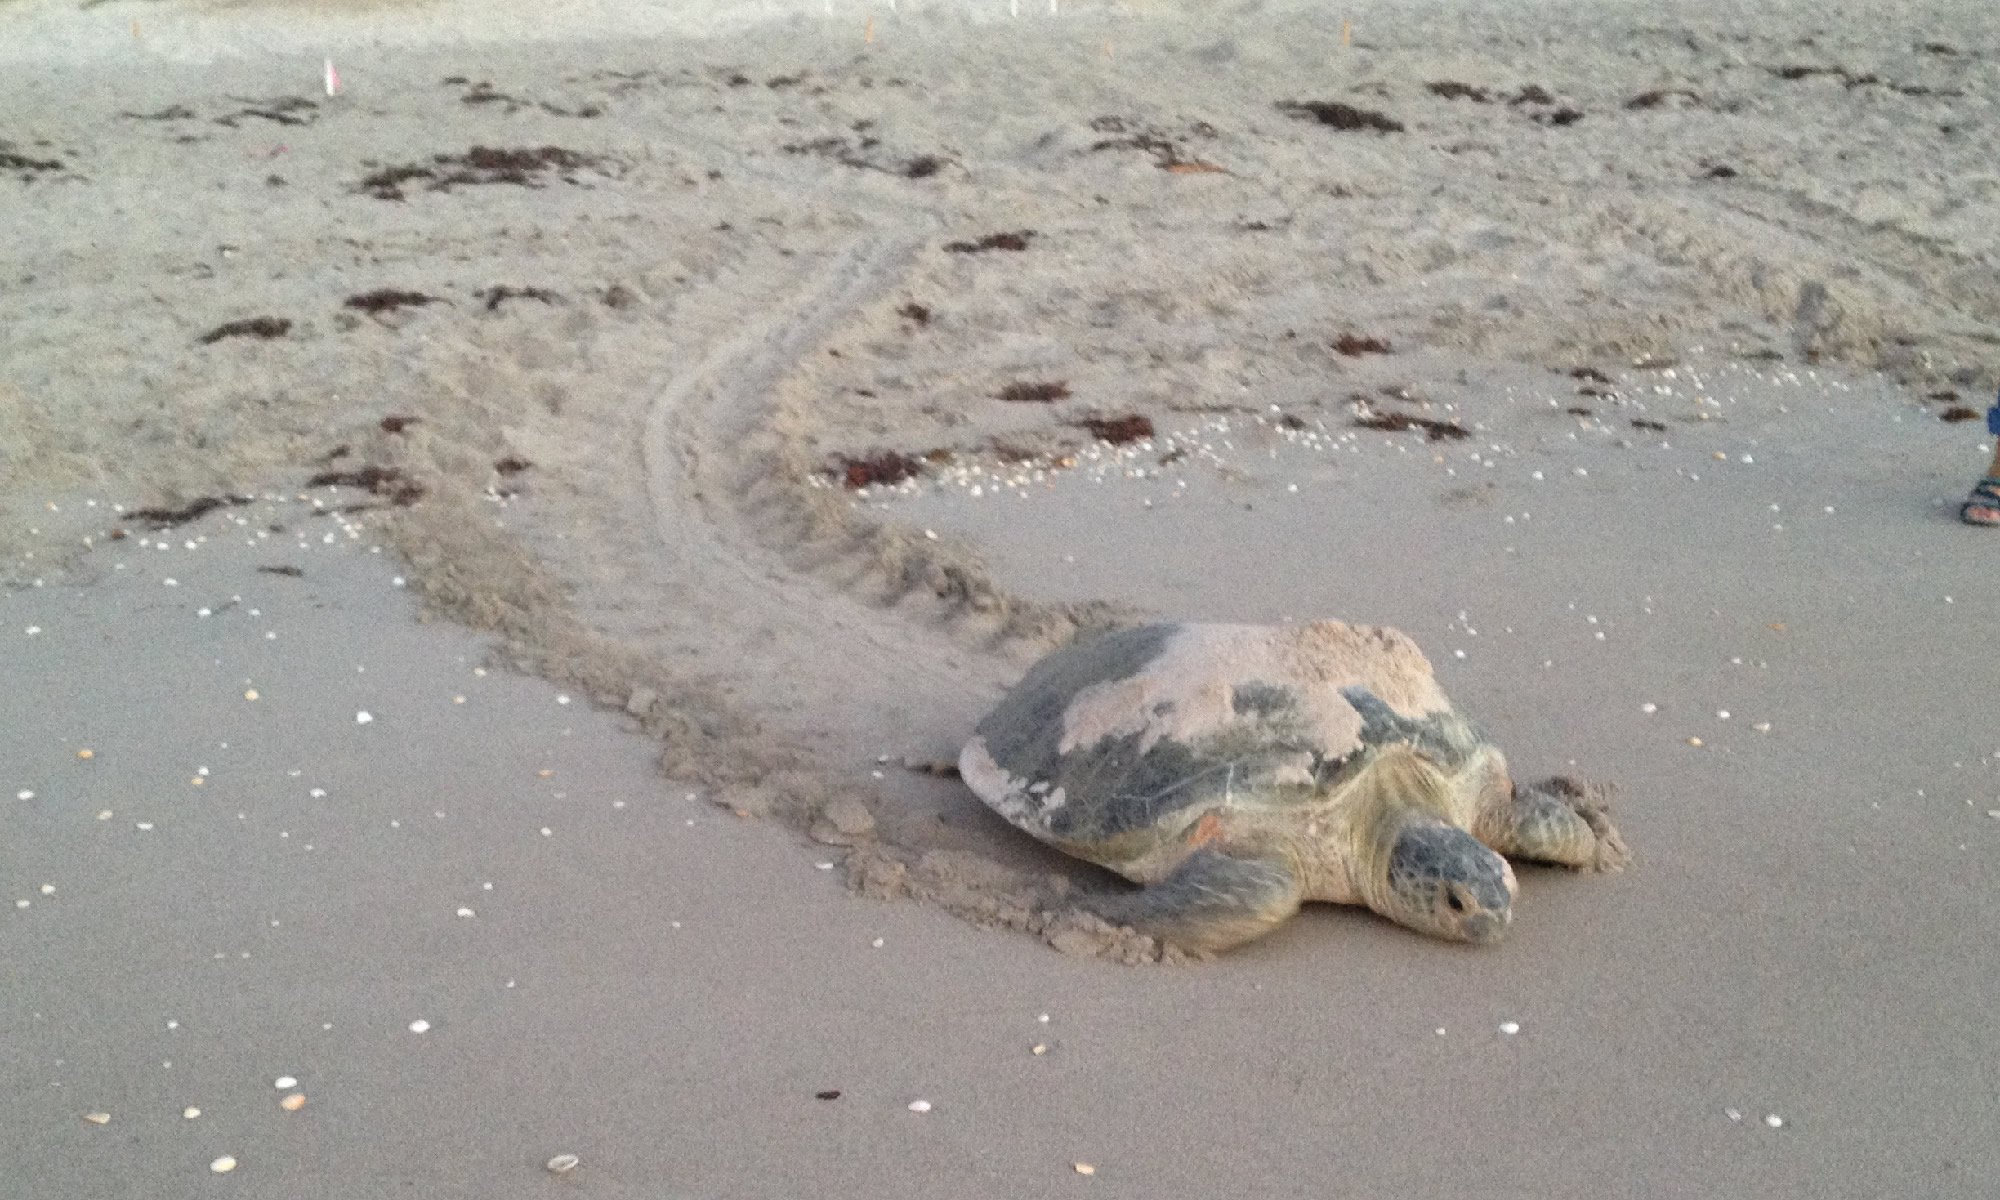 Mother turtle returns to ocean